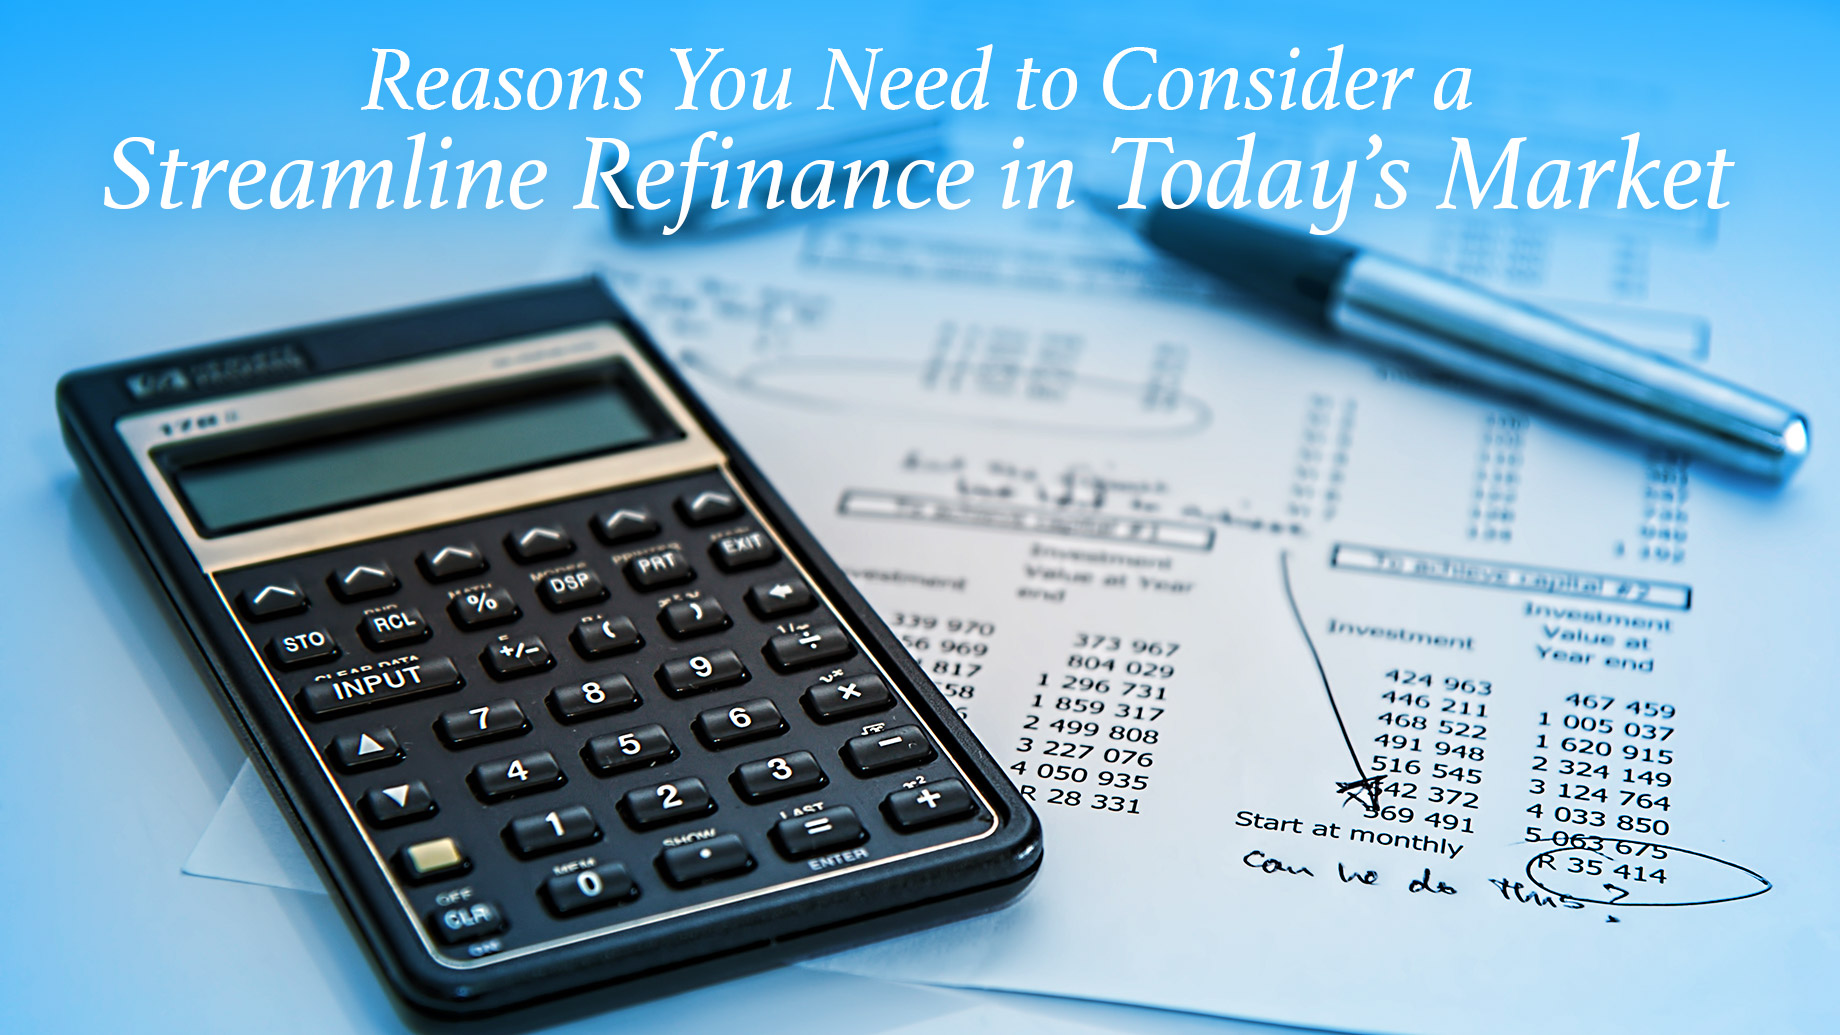 Reasons You Need to Consider a Streamline Refinance in Today's Market